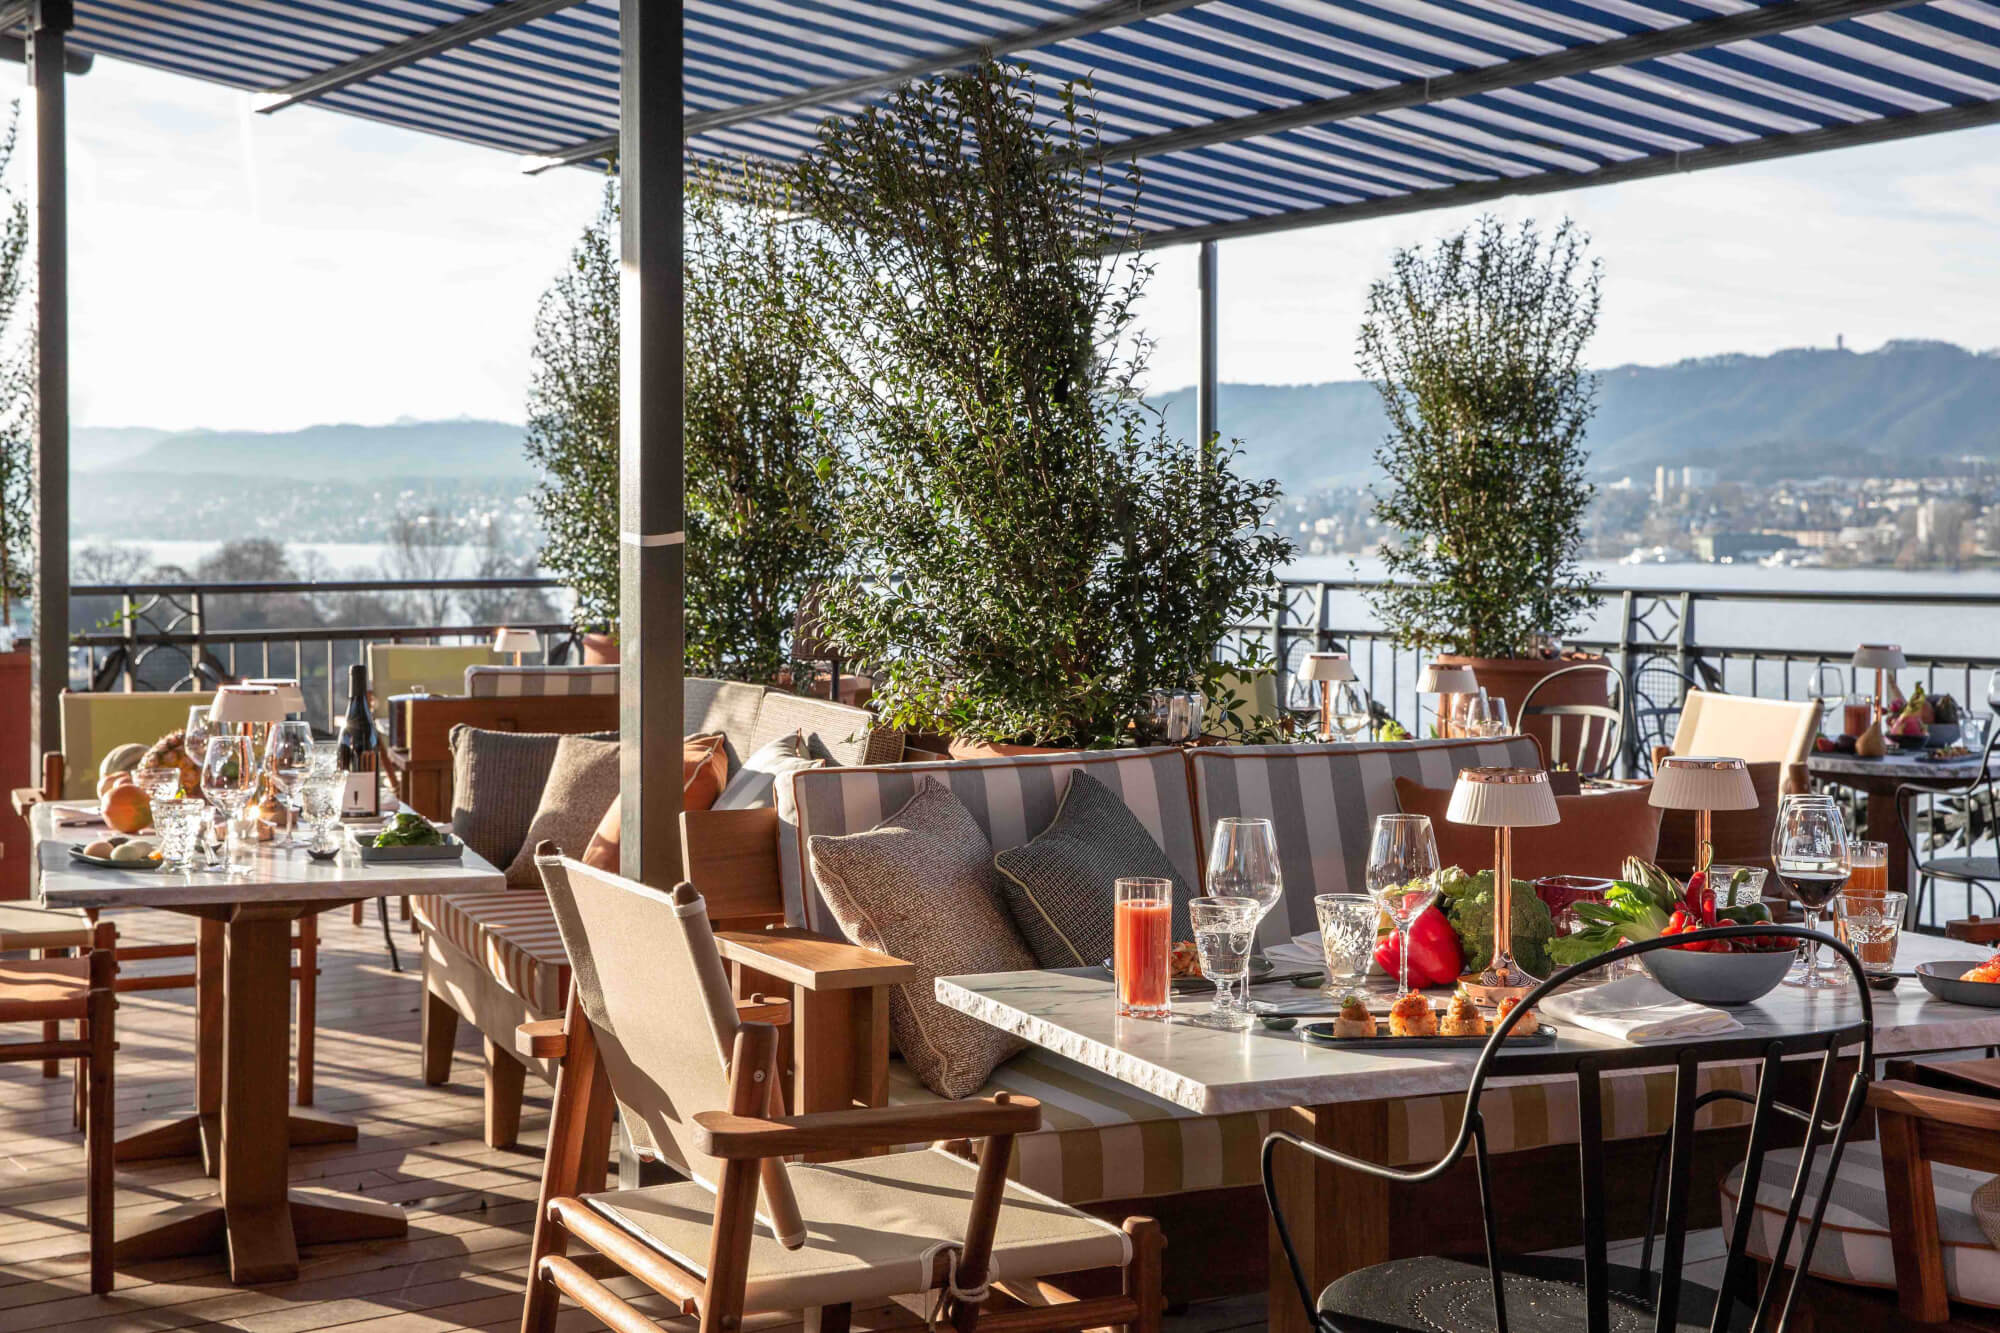 LA RESERVE EDEN AU LAC, ZURICH, THE IMAGINARY YACHT CLUB BY THE LAKE